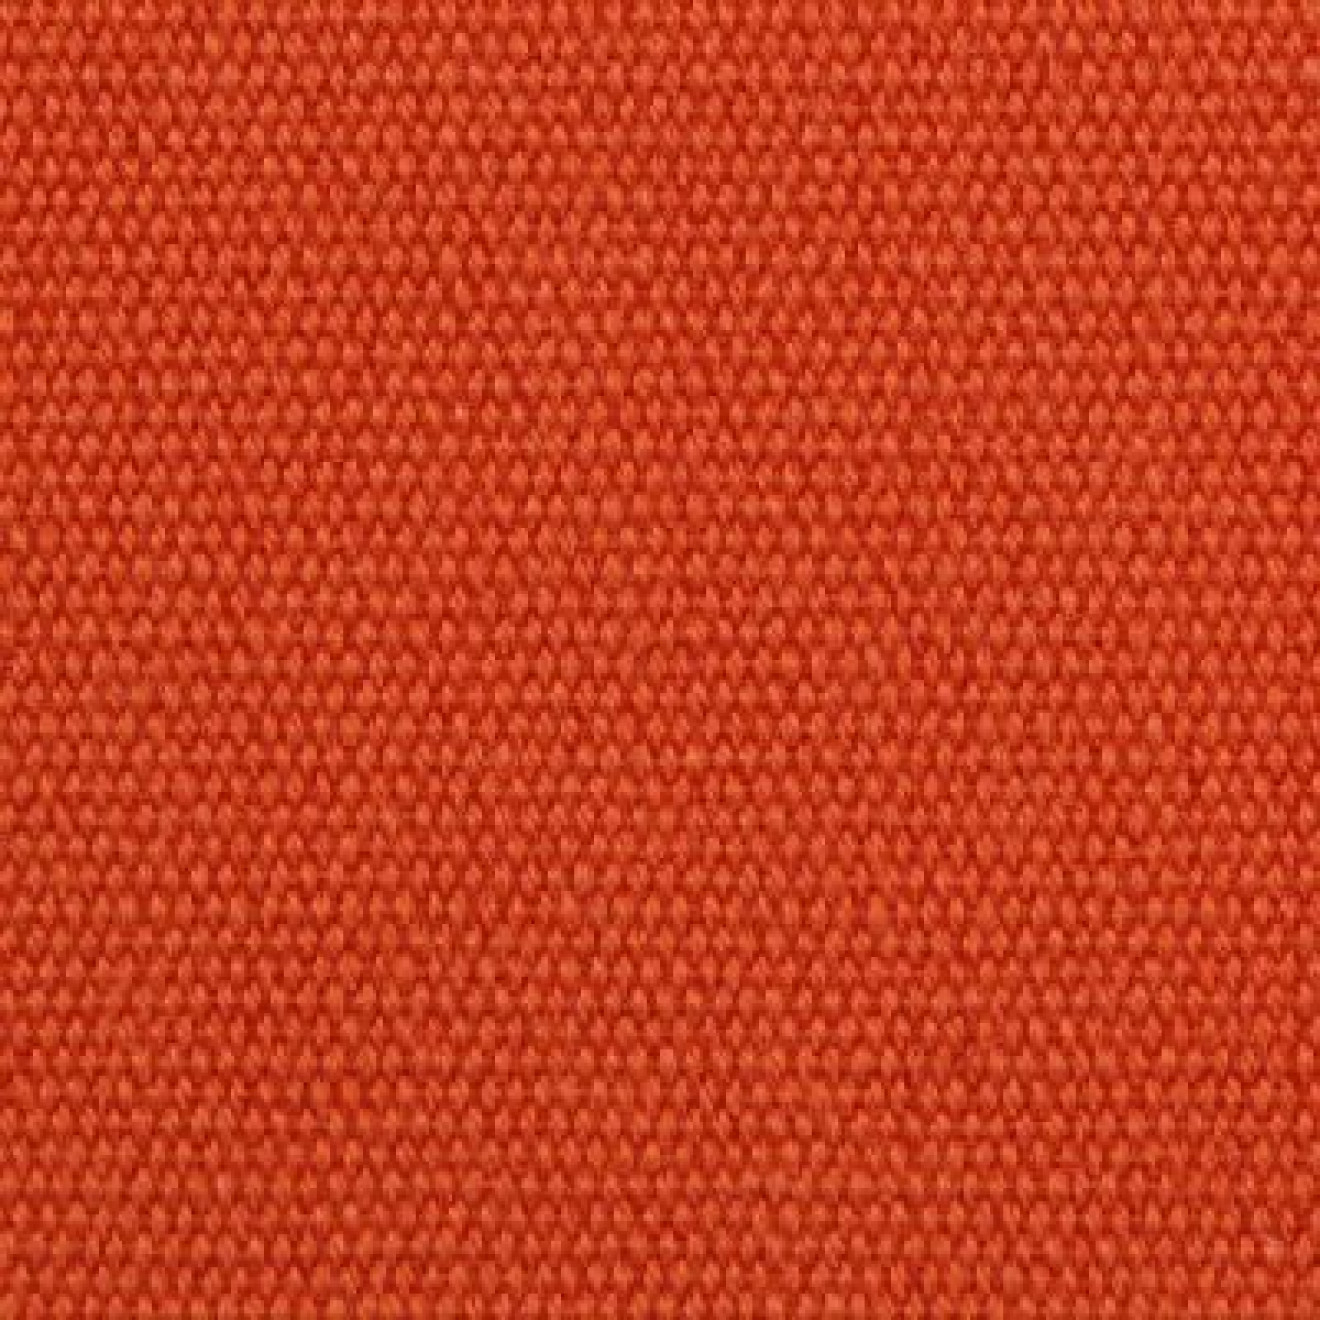 Rolle halbiert - Acrylstoff 38 Coral